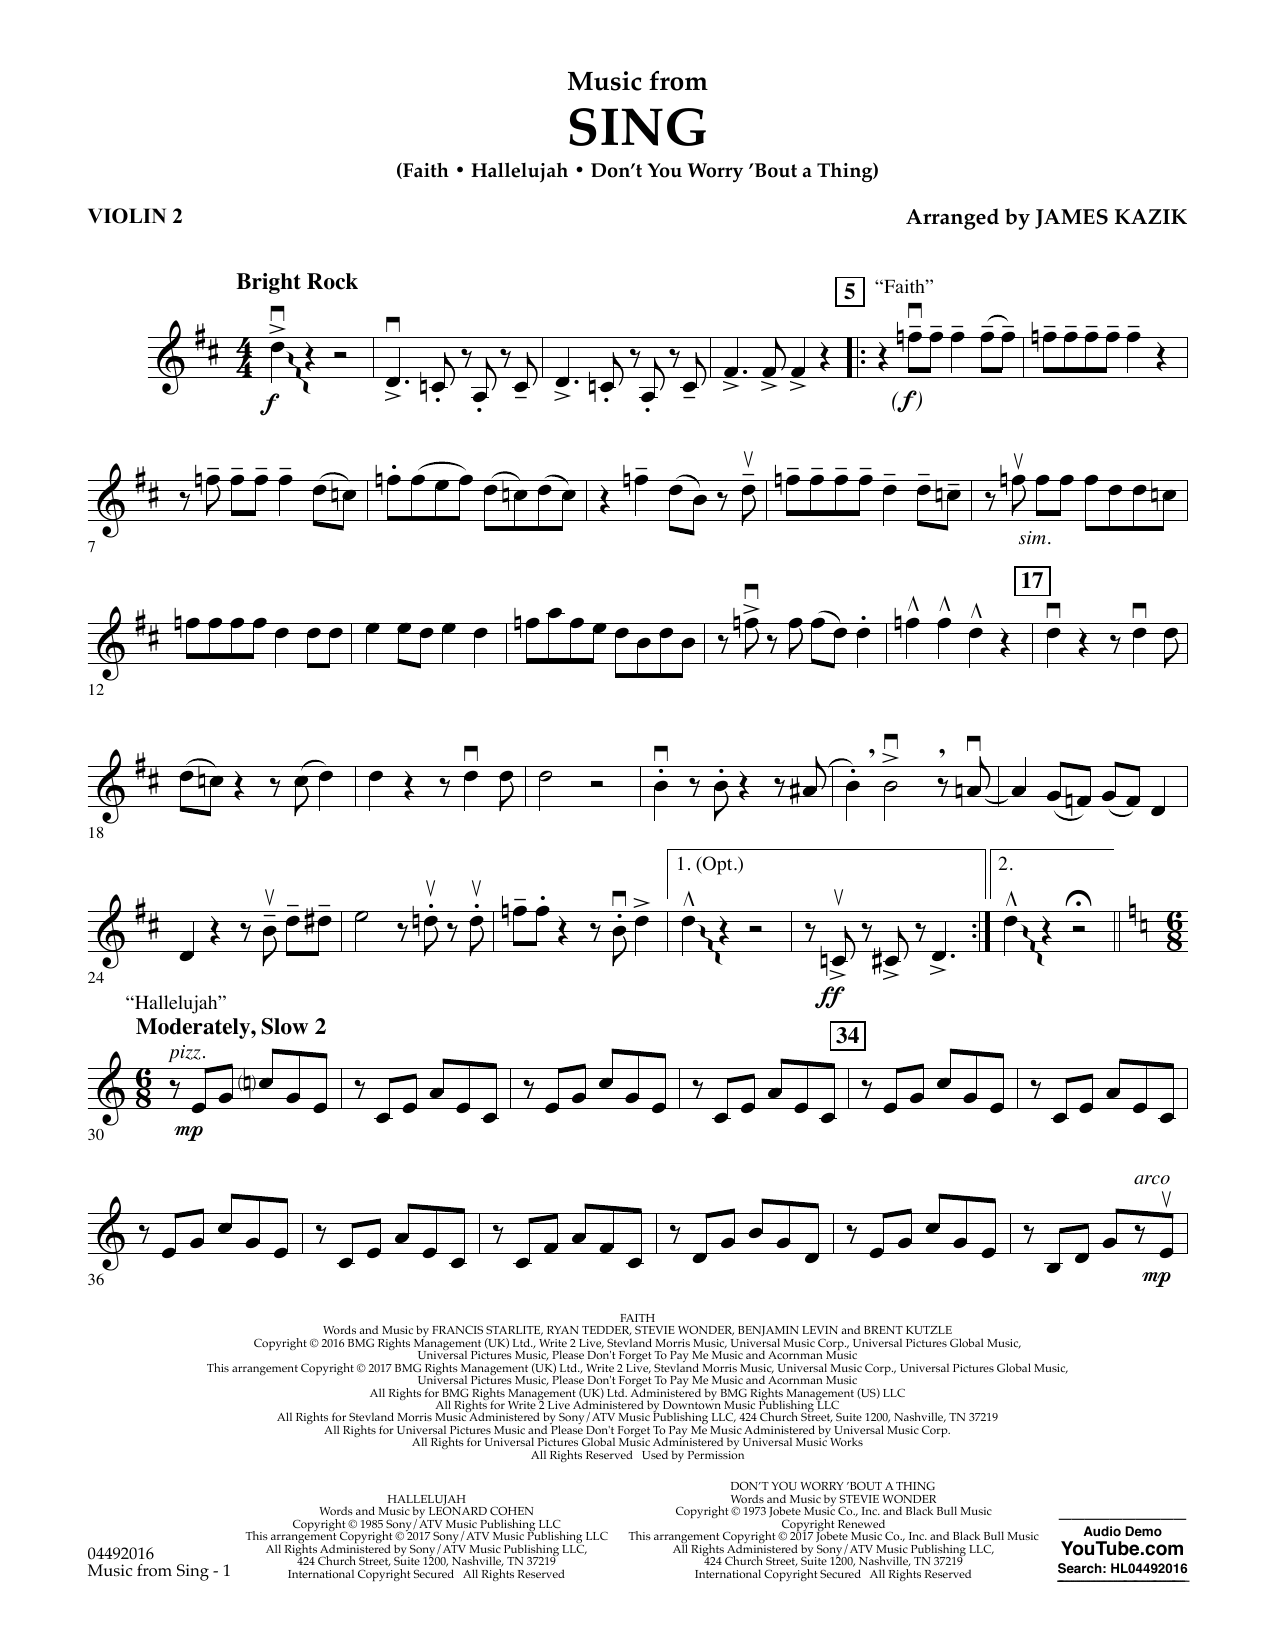 James Kazik Music from Sing - Violin 2 sheet music notes and chords. Download Printable PDF.